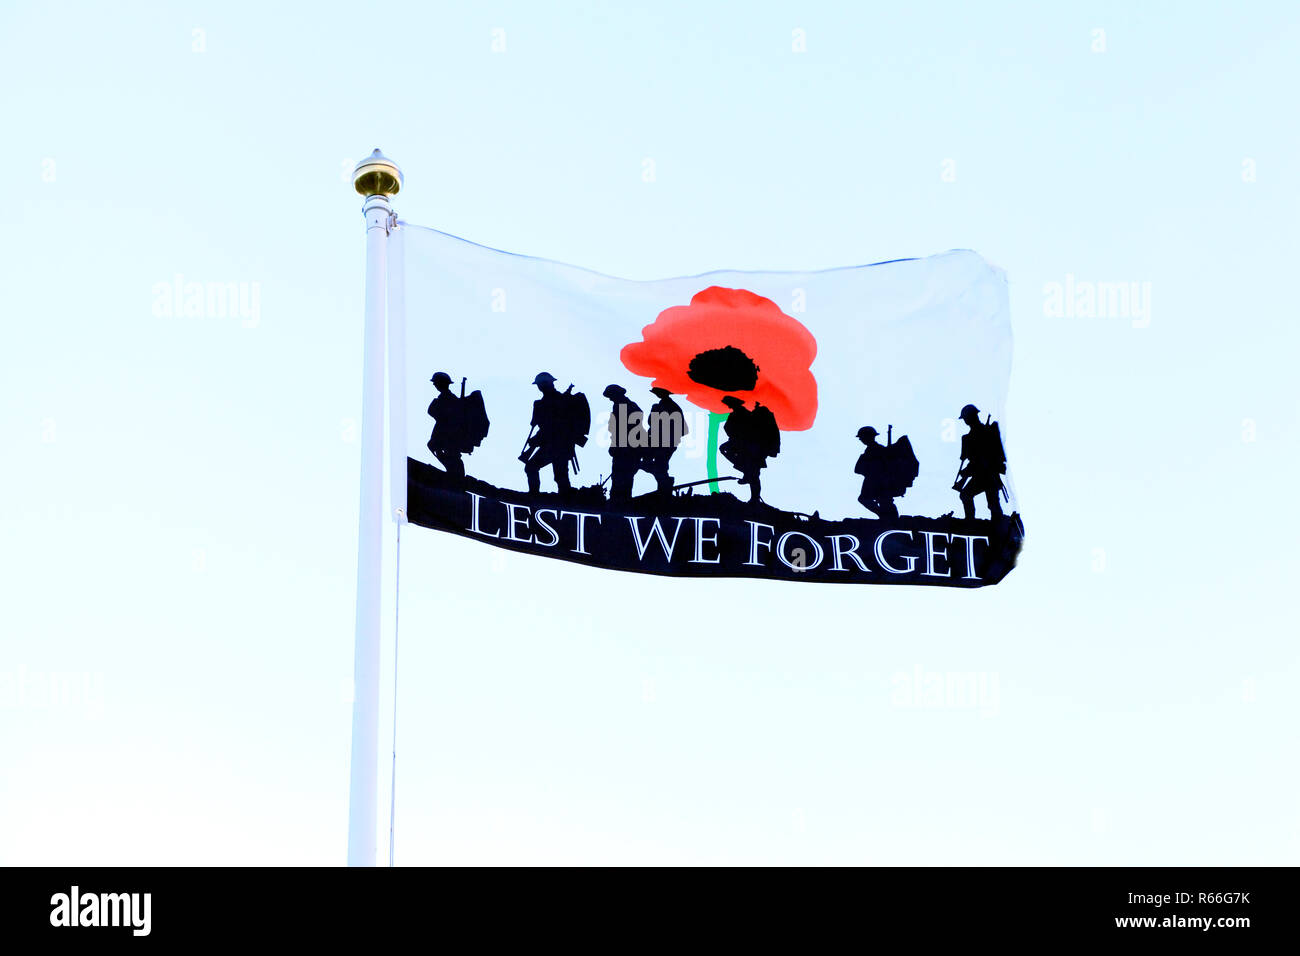 Lest We Forget, Remembrance, flag, banner, fallen heroes, military, We Shall Remember Them, UK - Stock Image